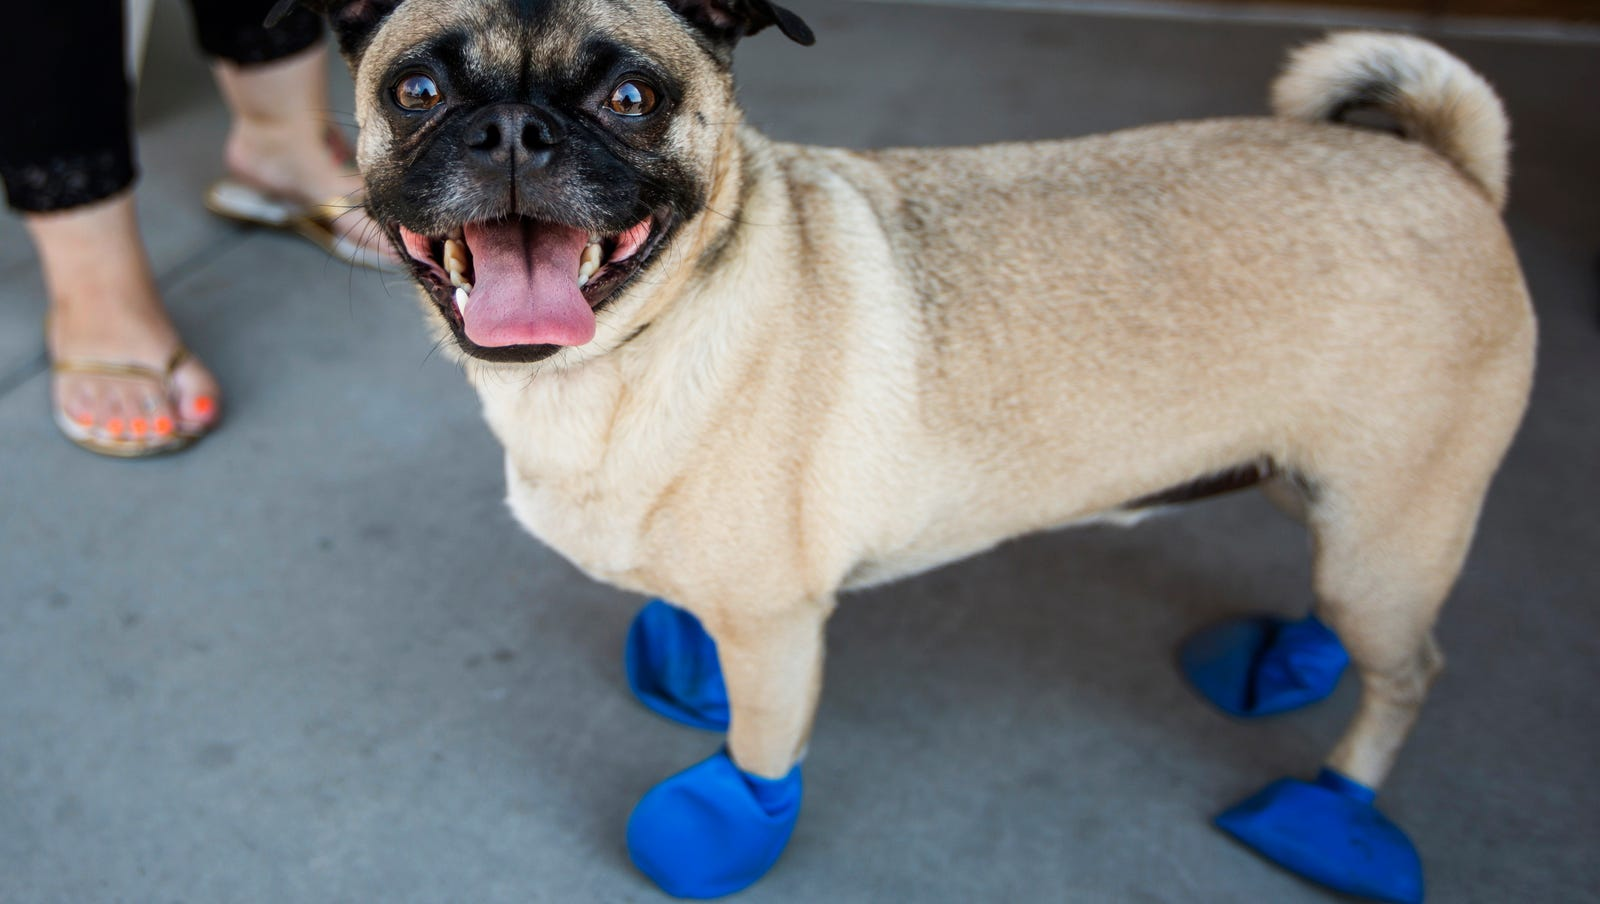 Fulton Homes Give Away Free Booties At Petsmart To Protect Dogs Paws